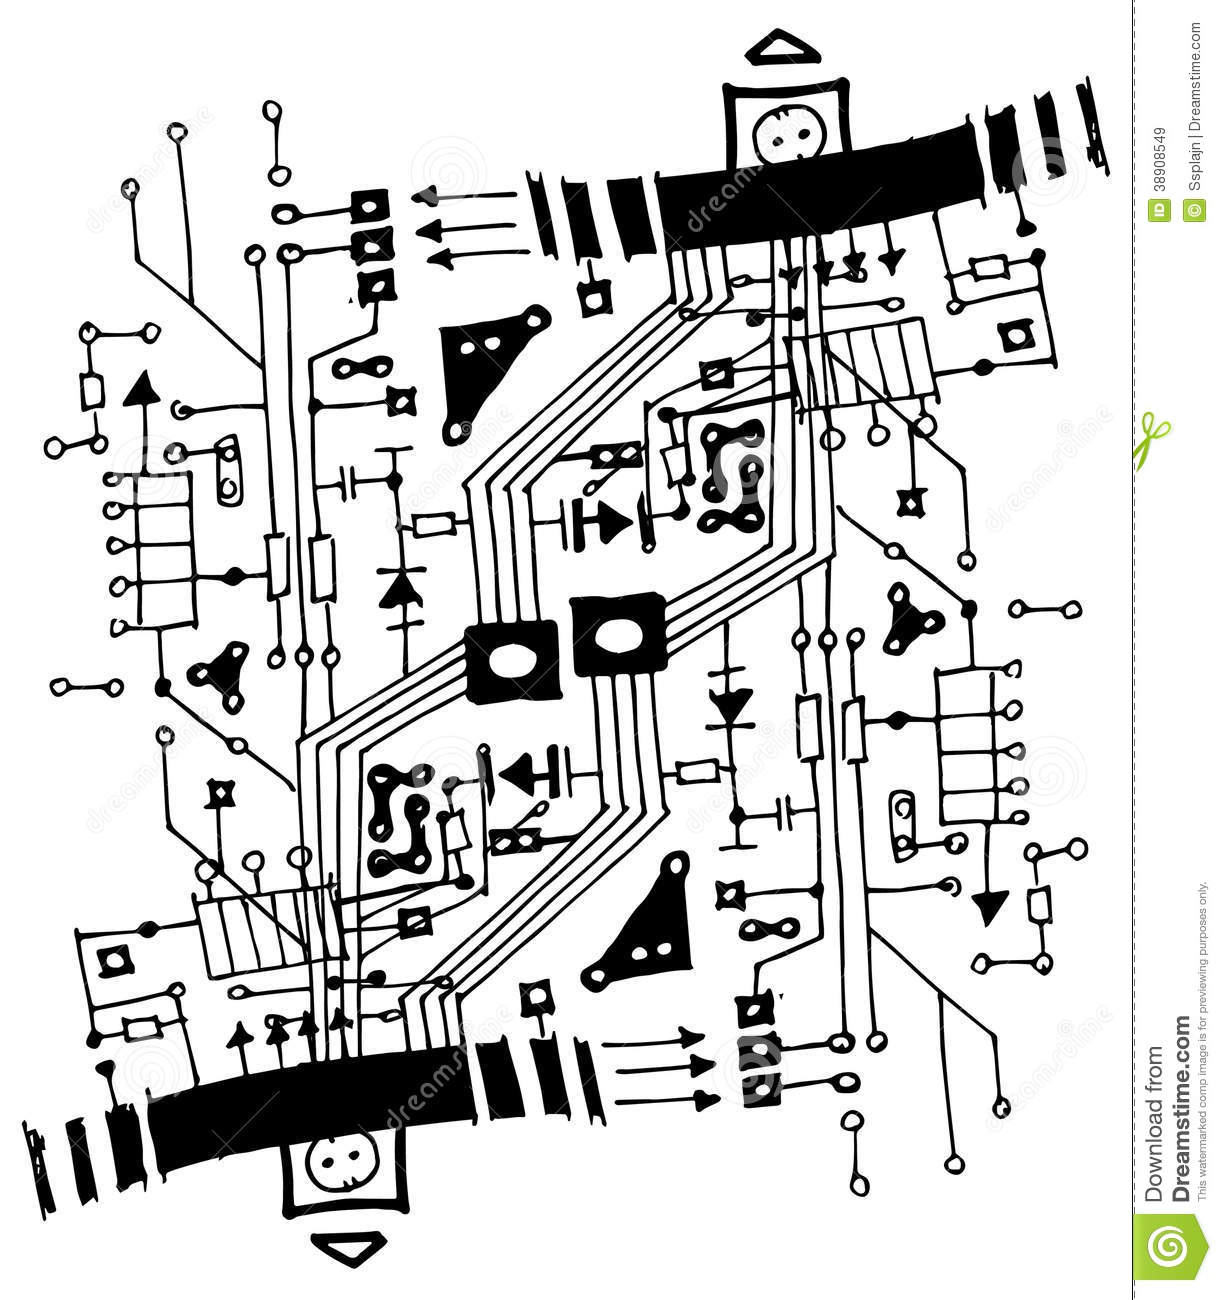 abstract circuit board illustration stock illustration